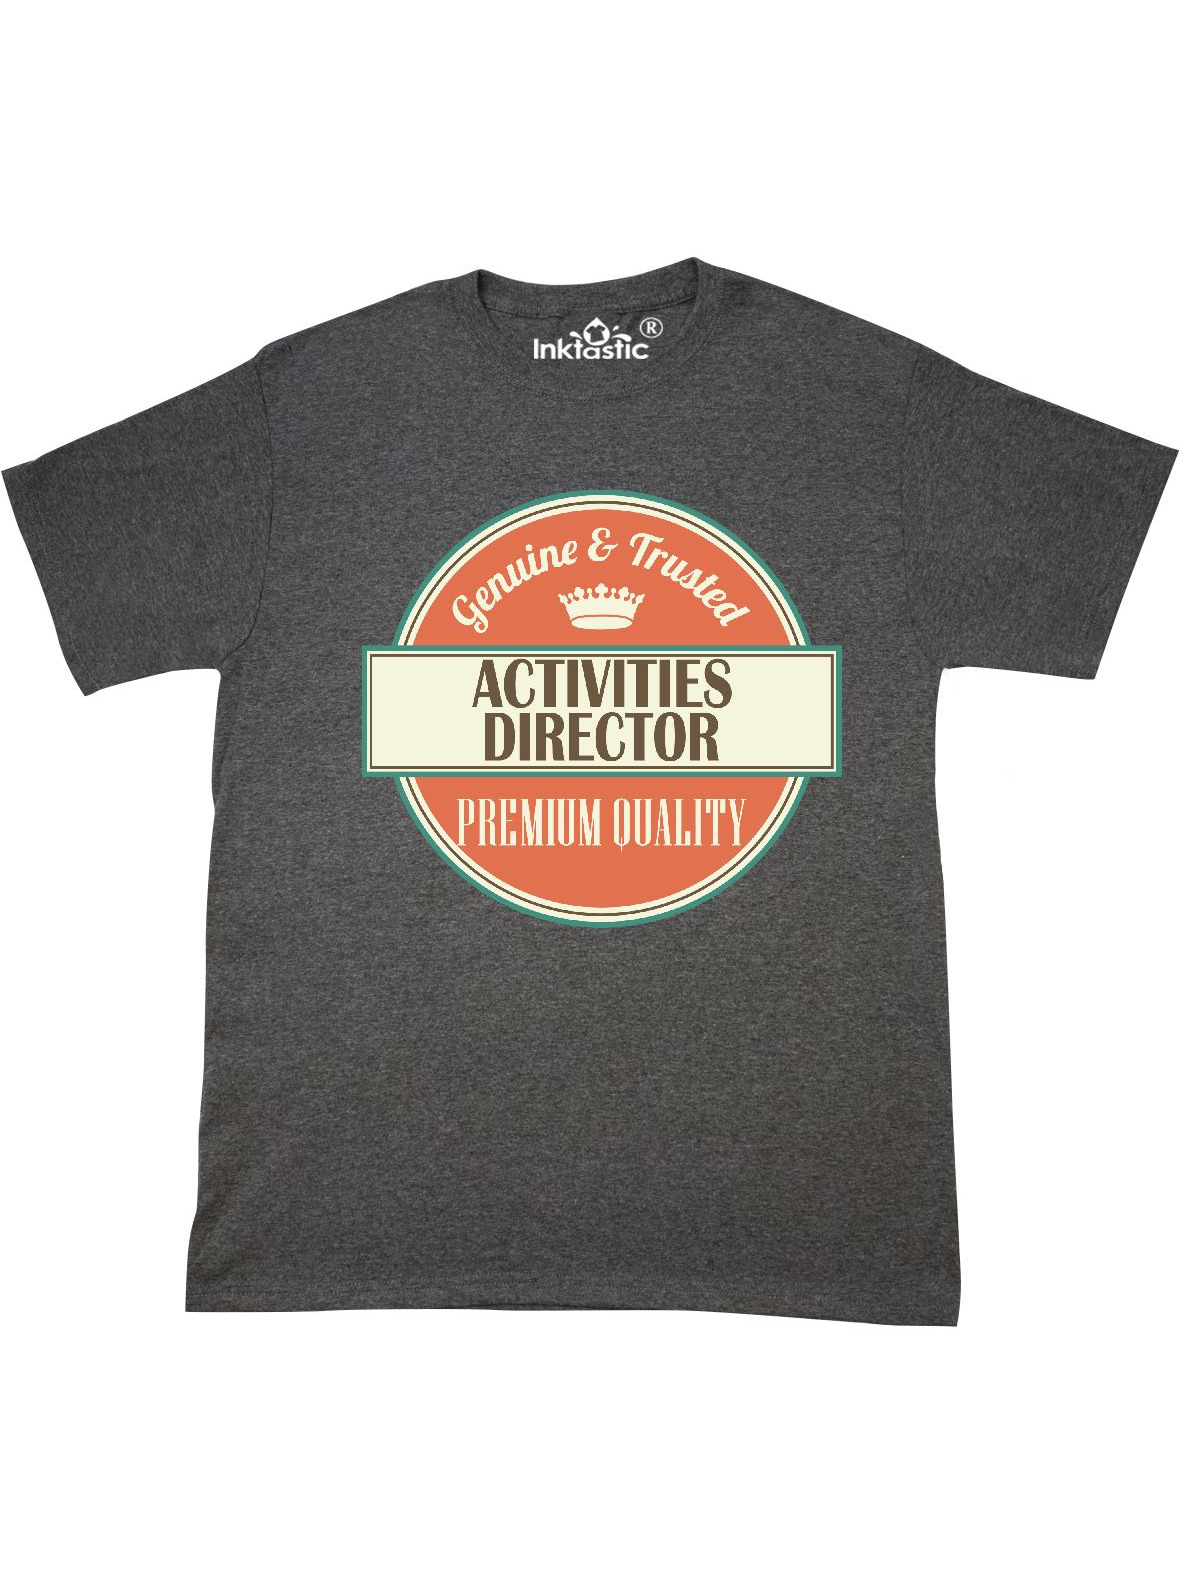 Inktastic Activities Director Awesome T-Shirt Occupation Vintage Gift Idea For